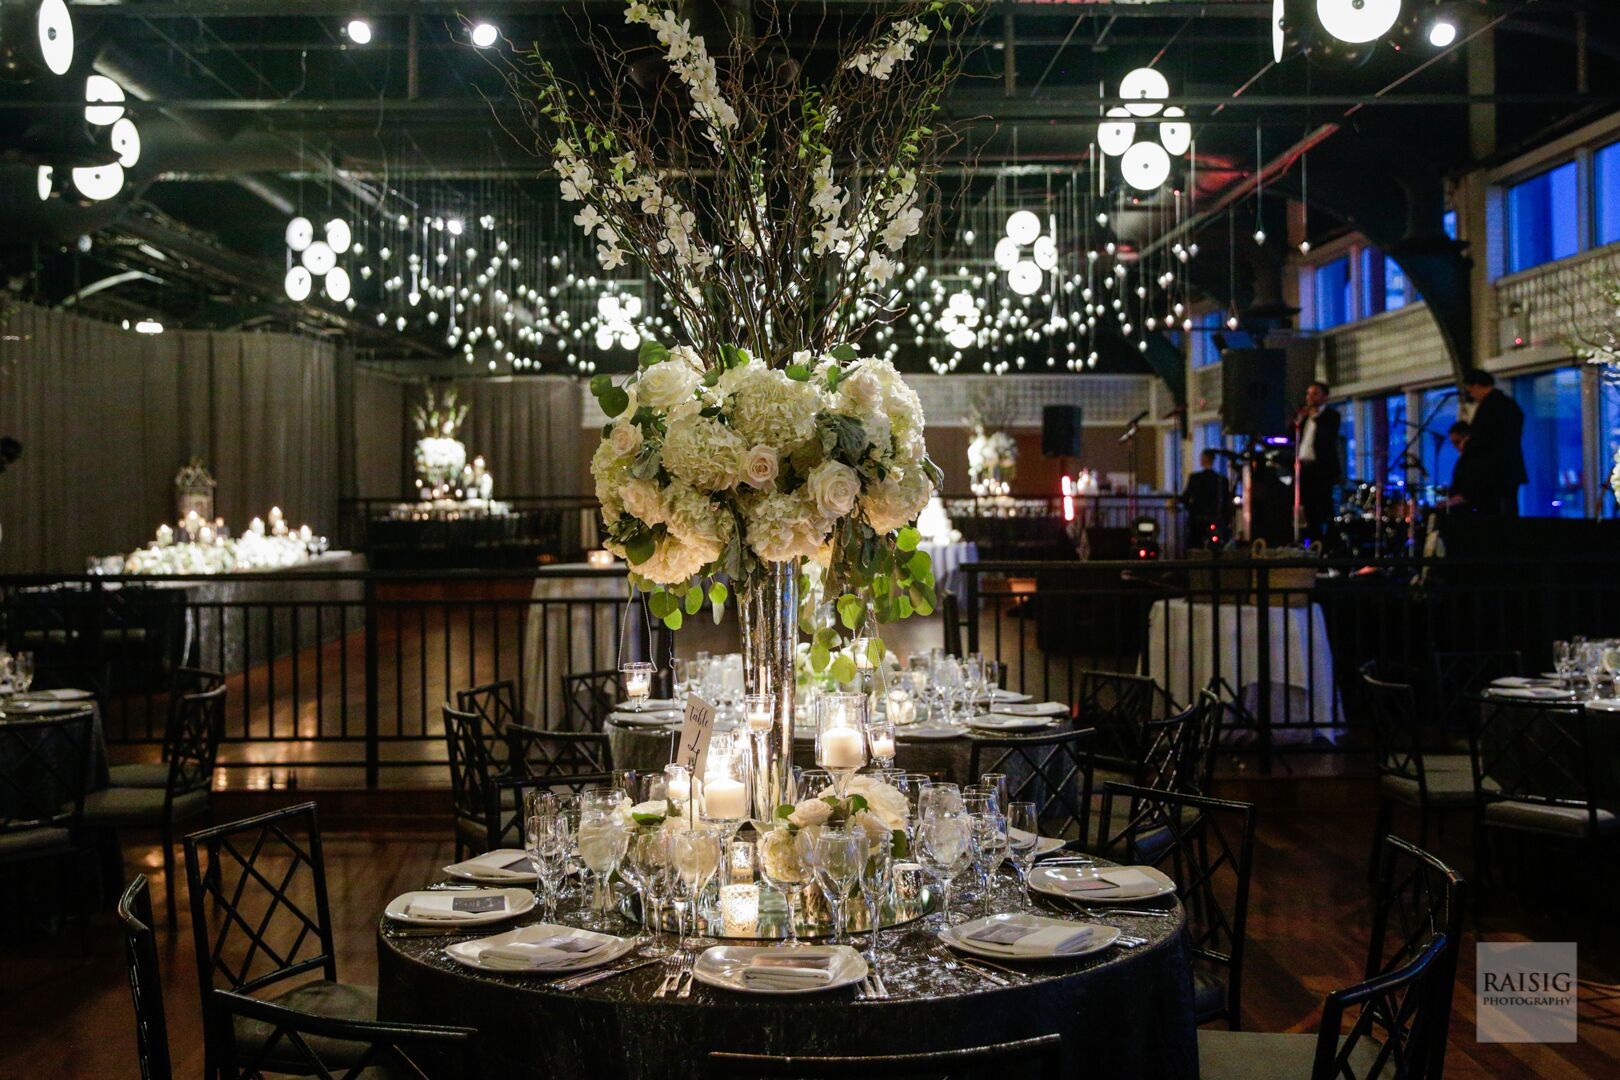 Candlelit tables with floral arrangement